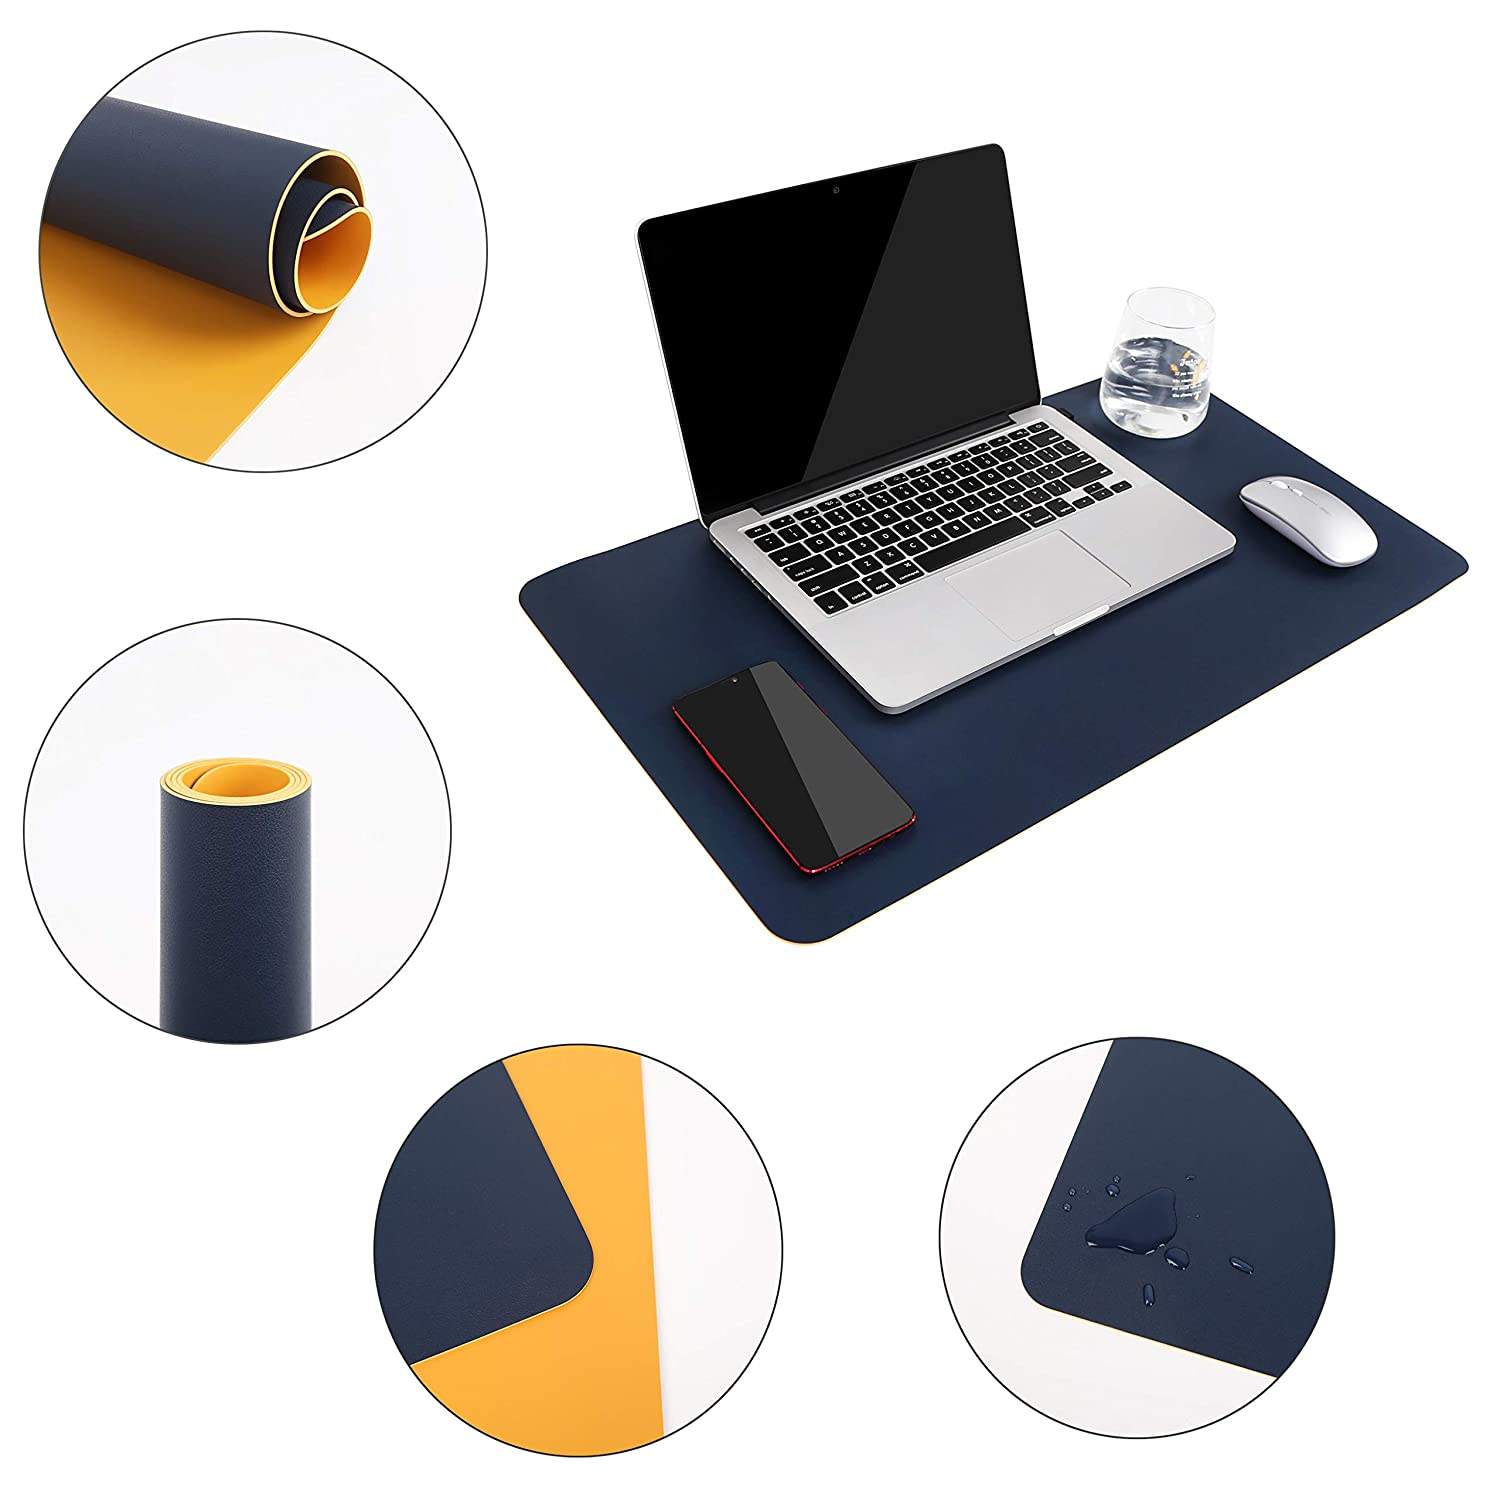 Blue-Green, 90 x 43 cm Multifunctional Office Desk Pad YSAGi Ultra Thin Waterproof PVC Leather Mouse Pad Dual Use Desk Writing Mat for Office//Home